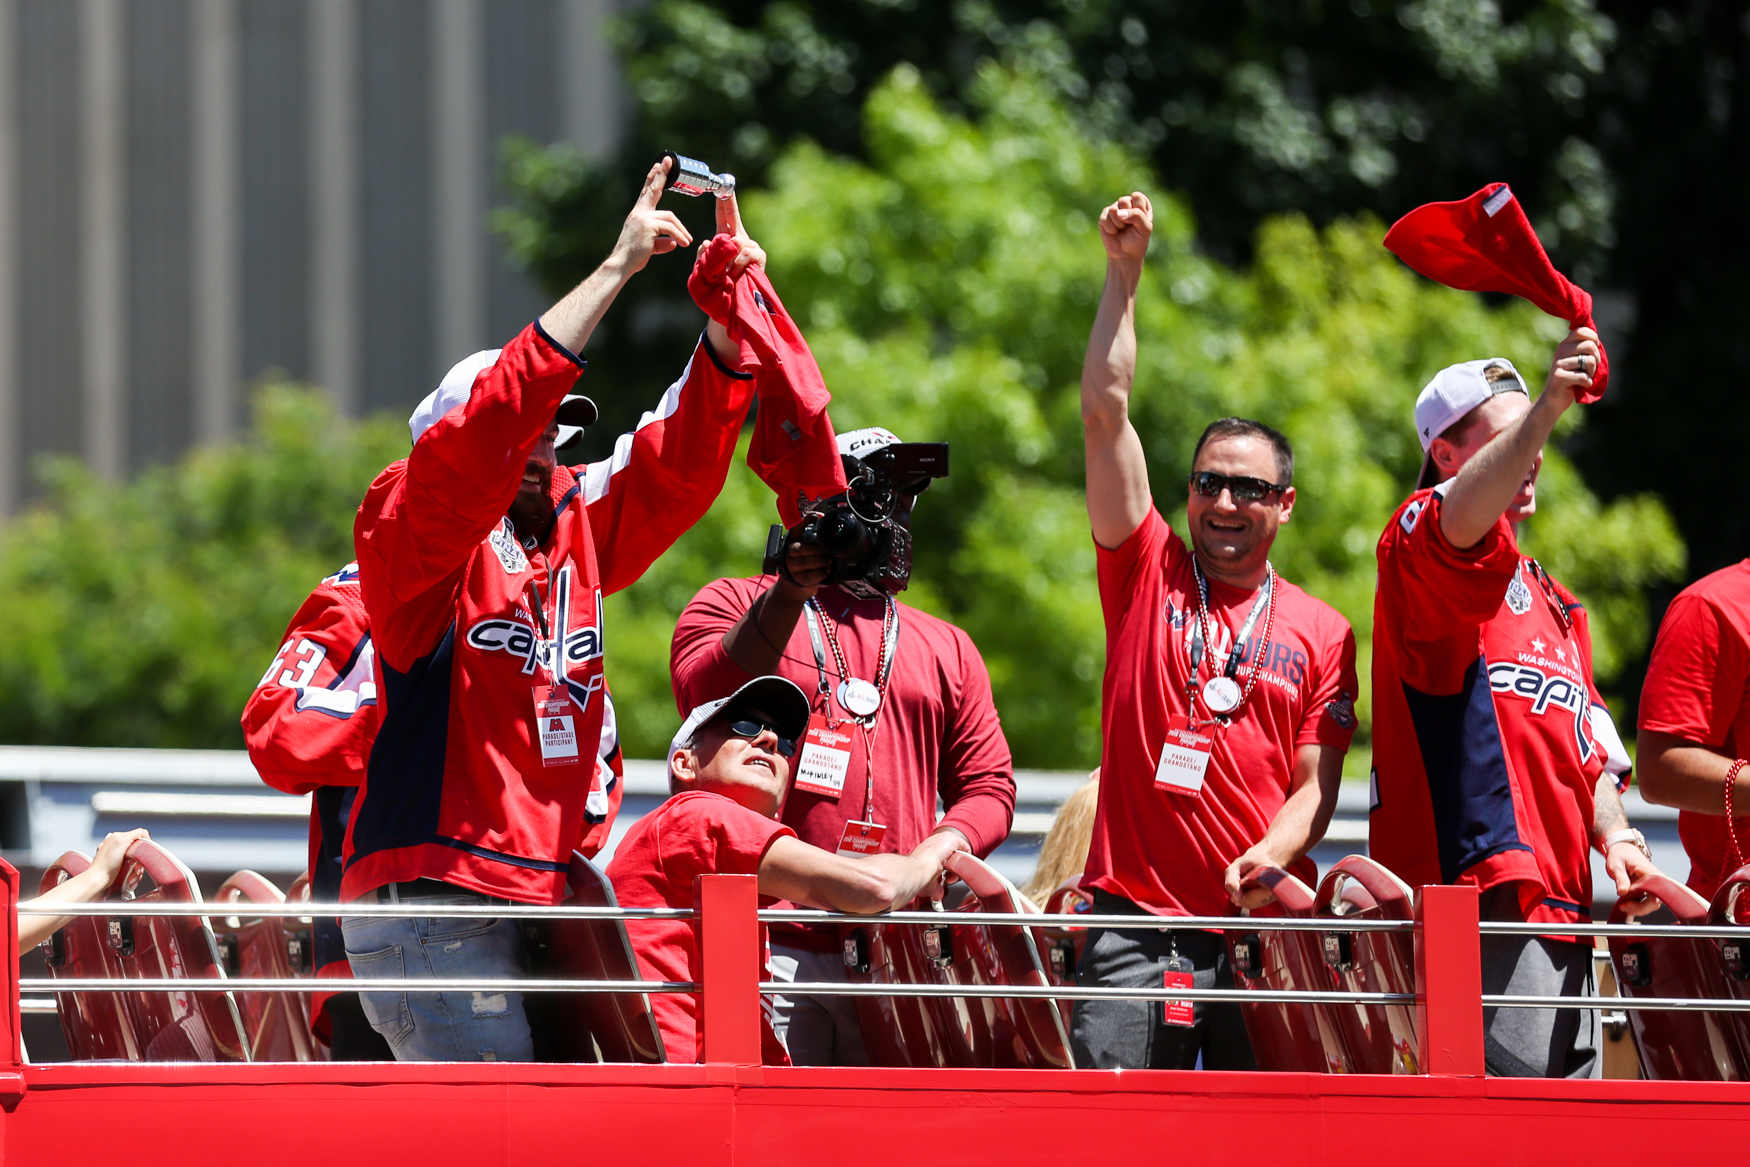 The National Mall was a sea of red as the Washington Capitals paraded the Stanley Cup through the streets of D.C. Although the cup barely left Alex Ovechkin's brawny-but-tender embrace, the players reveled in the fervor, shotgunning beers as they rode on top of buses along Constitution Avenue before rallying on The Mall. (Amanda Andrade-Rhoades/DC Refined)